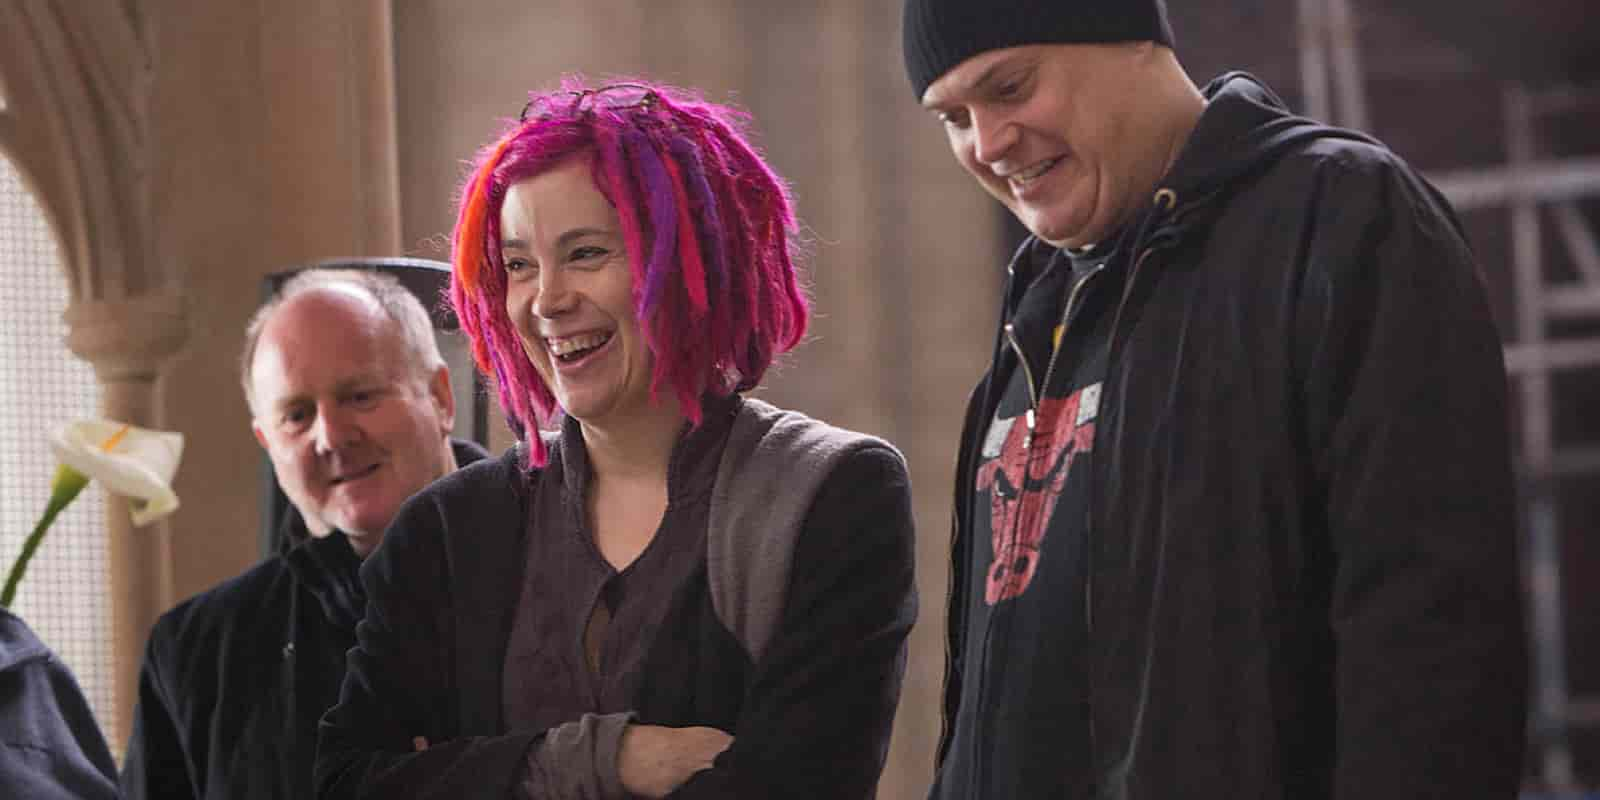 Best Female Directors - Lana Wachowski and Lilly Wachowski